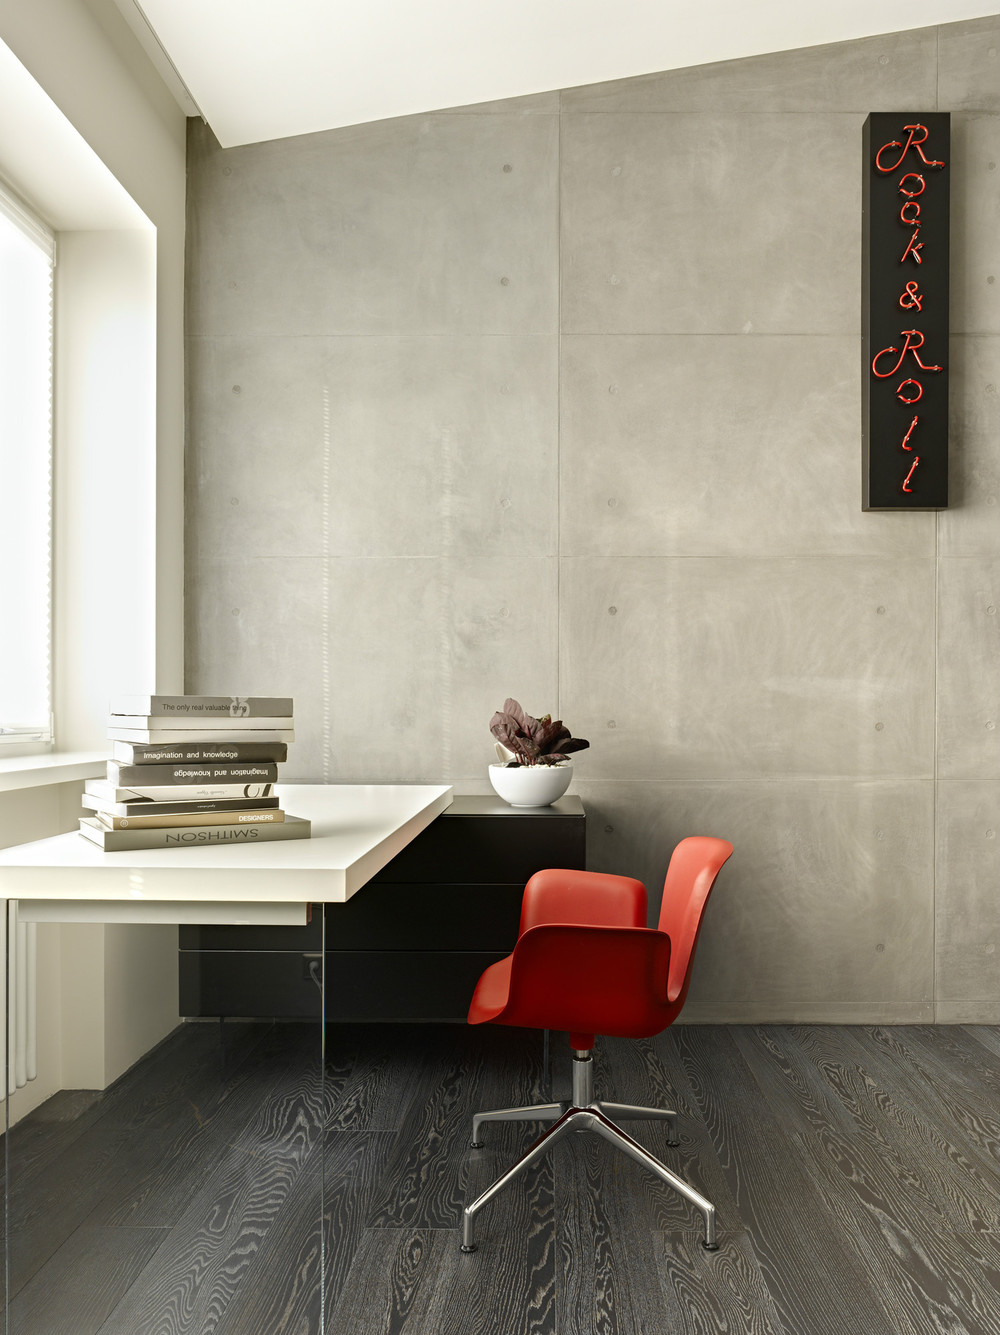 Red Molded Office Chair - Invisible doors turn a home into an artistic feat of design